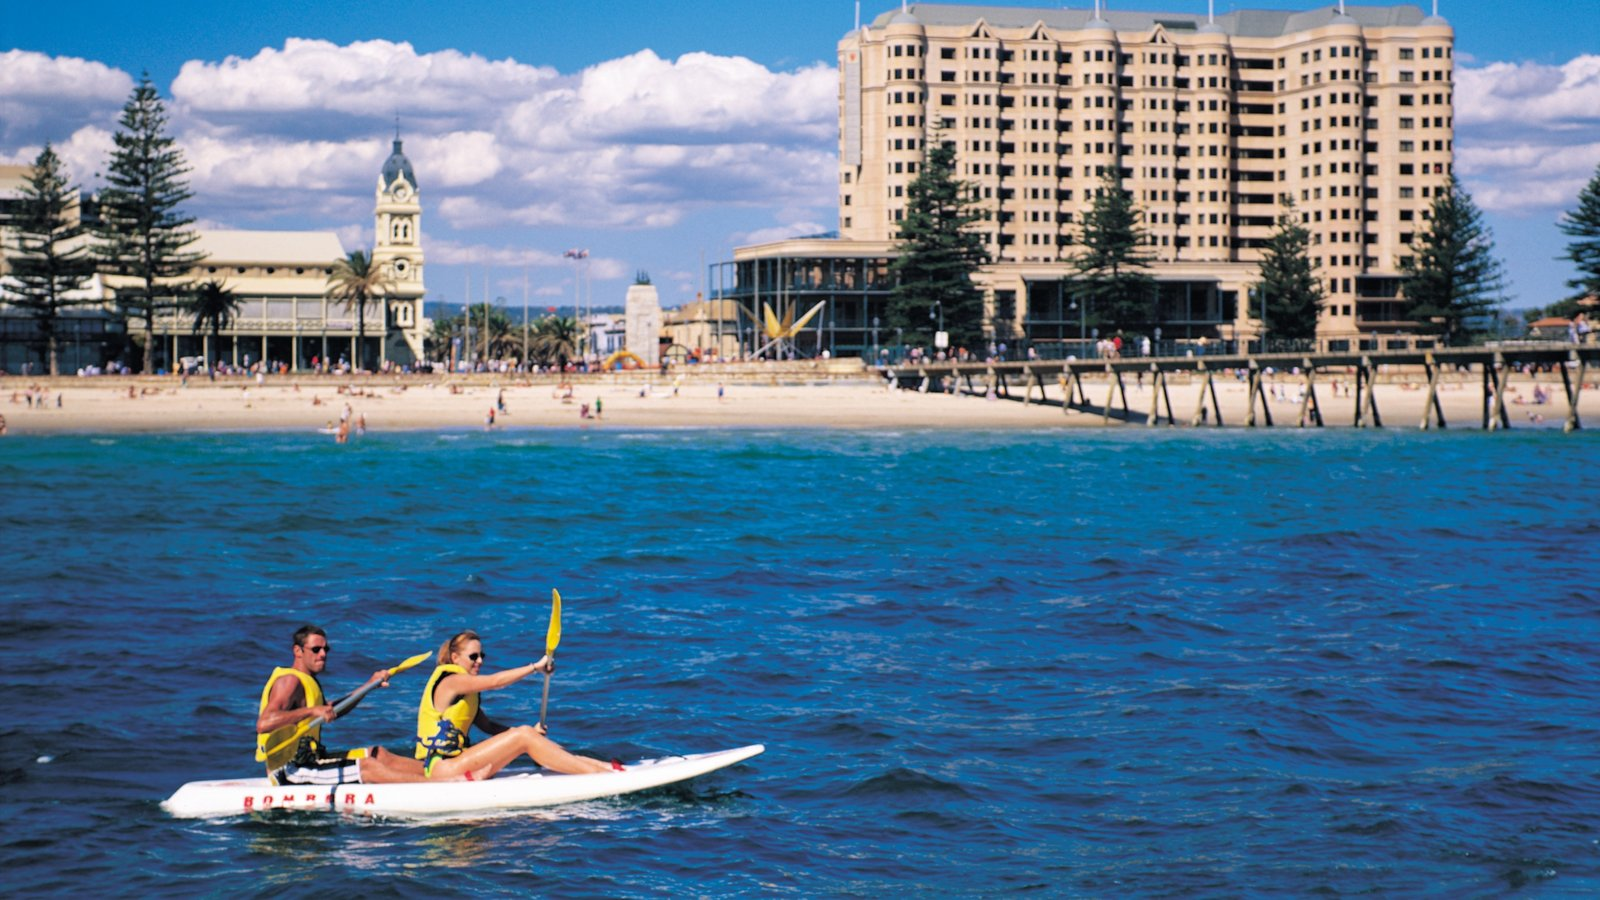 Glenelg Beach featuring a beach, a luxury hotel or resort and kayaking or canoeing